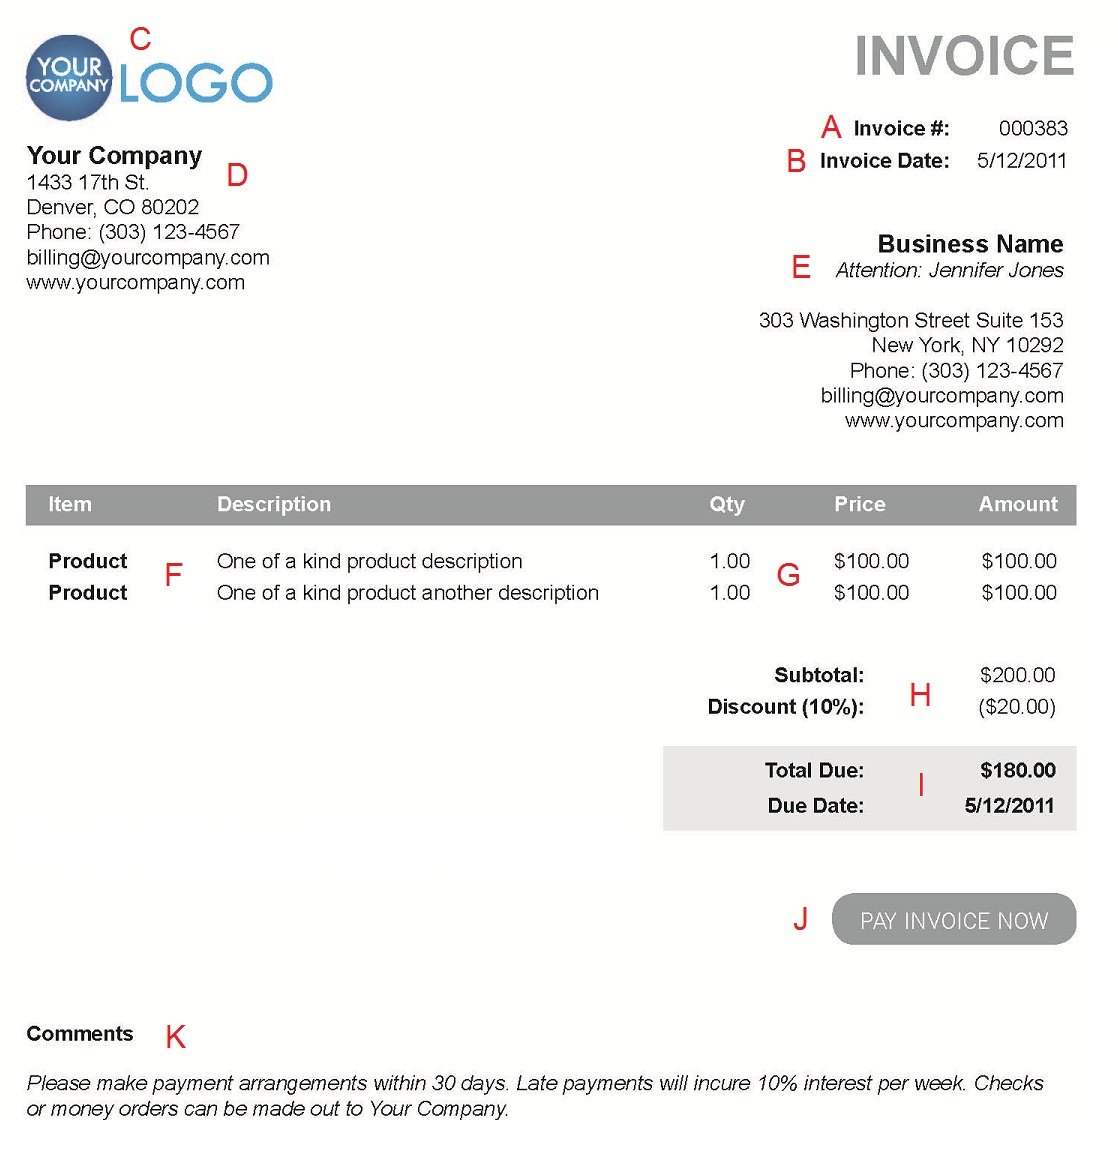 Opposenewapstandardsus  Surprising The  Different Sections Of An Electronic Payment Invoice With Exciting A  With Nice Cif Invoice Also Ultimate Invoice Finance In Addition Gst Tax Invoice Requirements And Open Invoicing As Well As Hotel Invoice Sample Additionally Invoice For Work Done From Paysimplecom With Opposenewapstandardsus  Exciting The  Different Sections Of An Electronic Payment Invoice With Nice A  And Surprising Cif Invoice Also Ultimate Invoice Finance In Addition Gst Tax Invoice Requirements From Paysimplecom